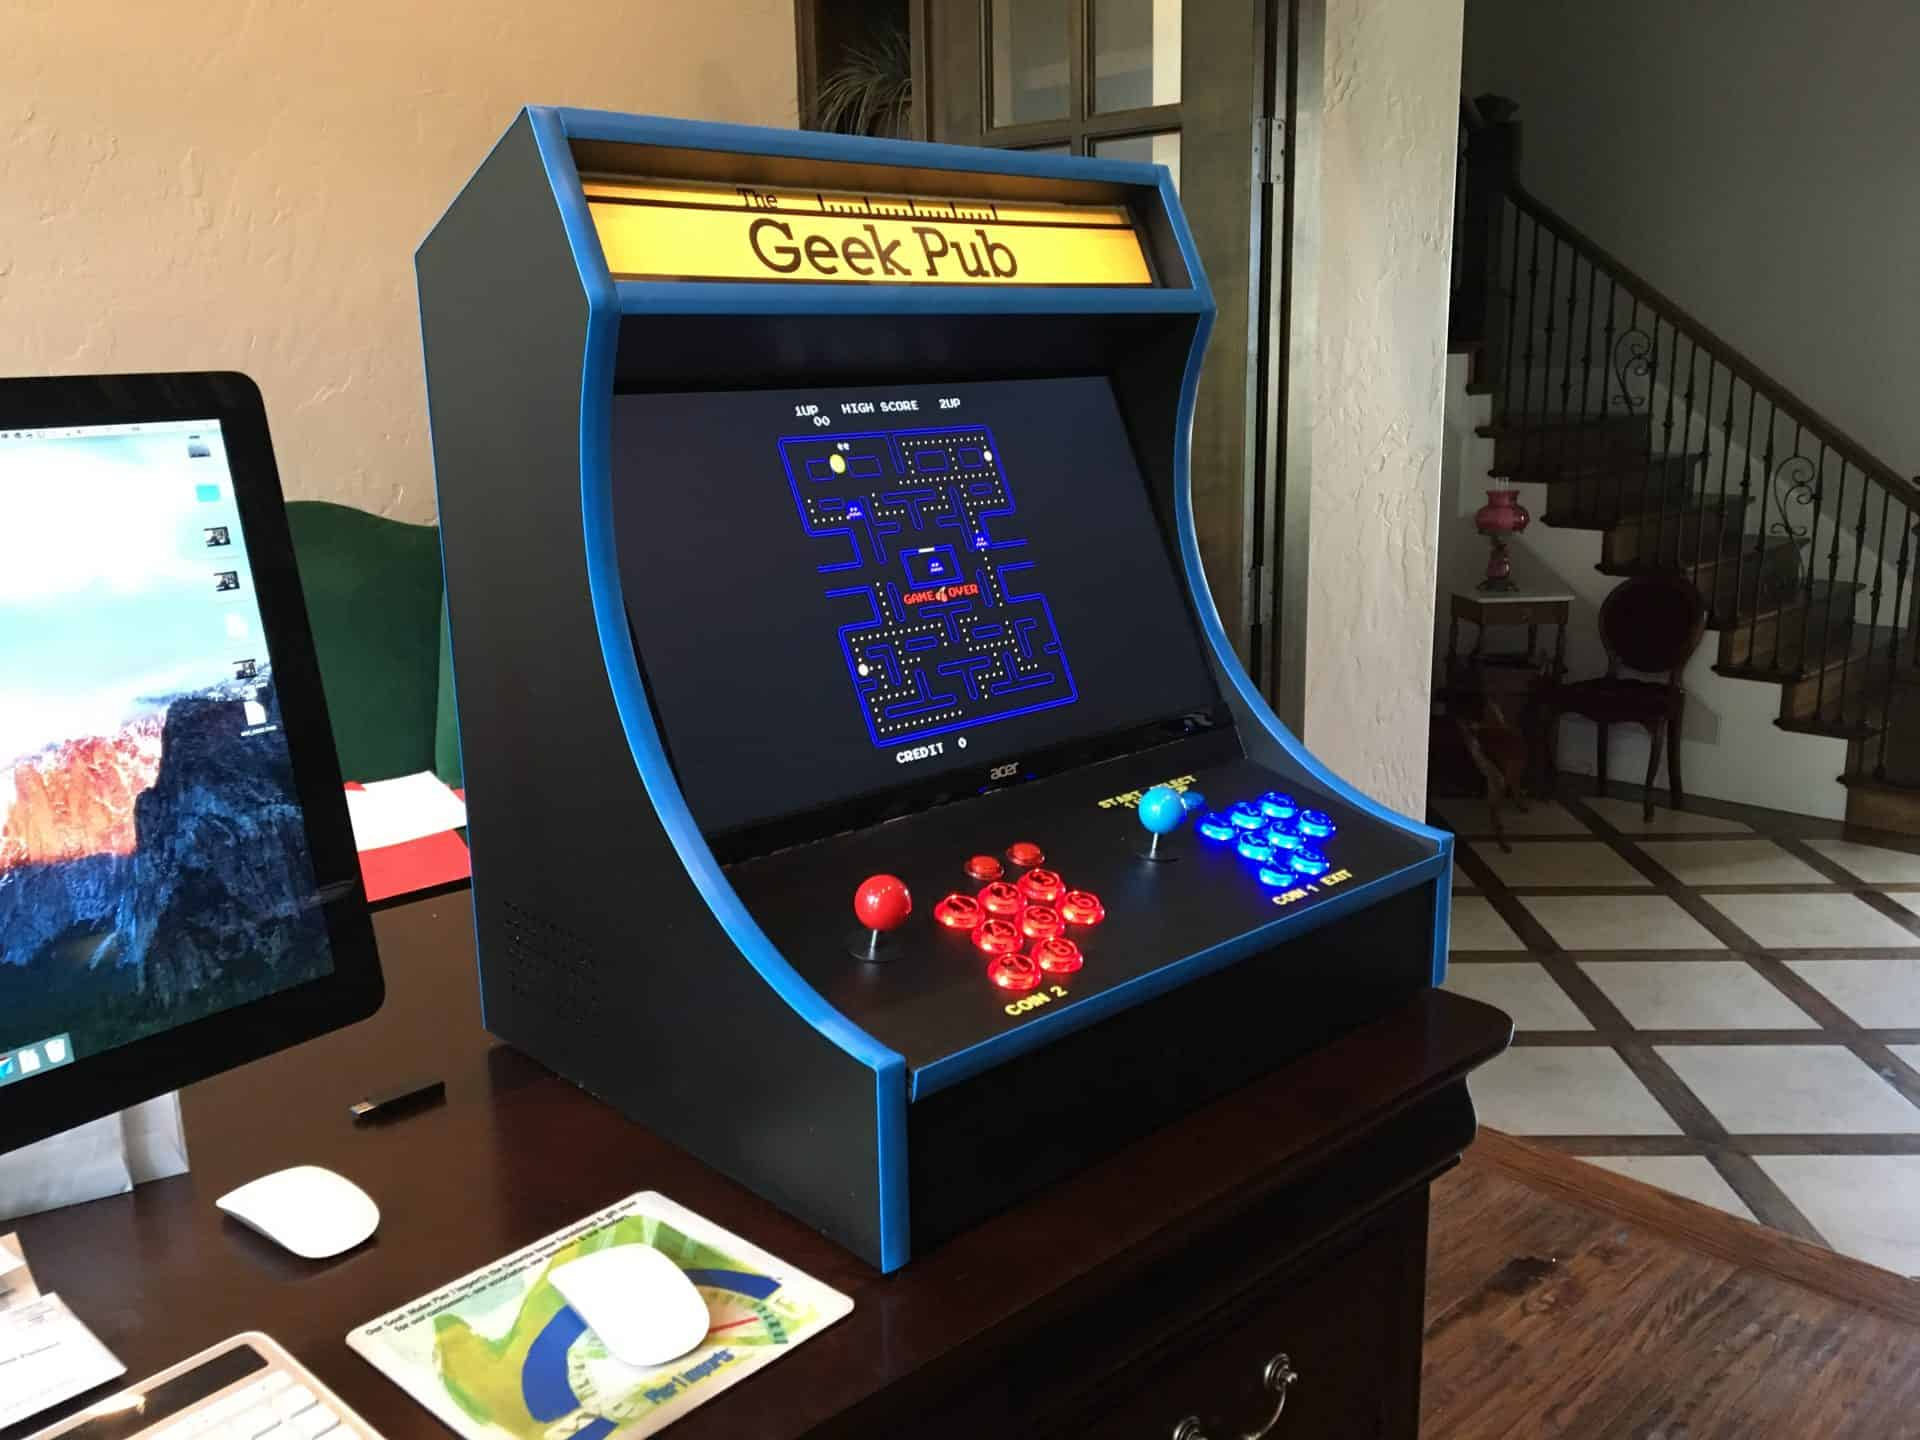 Build a RetroPie Bartop Arcade Cabinet - The Geek Pub